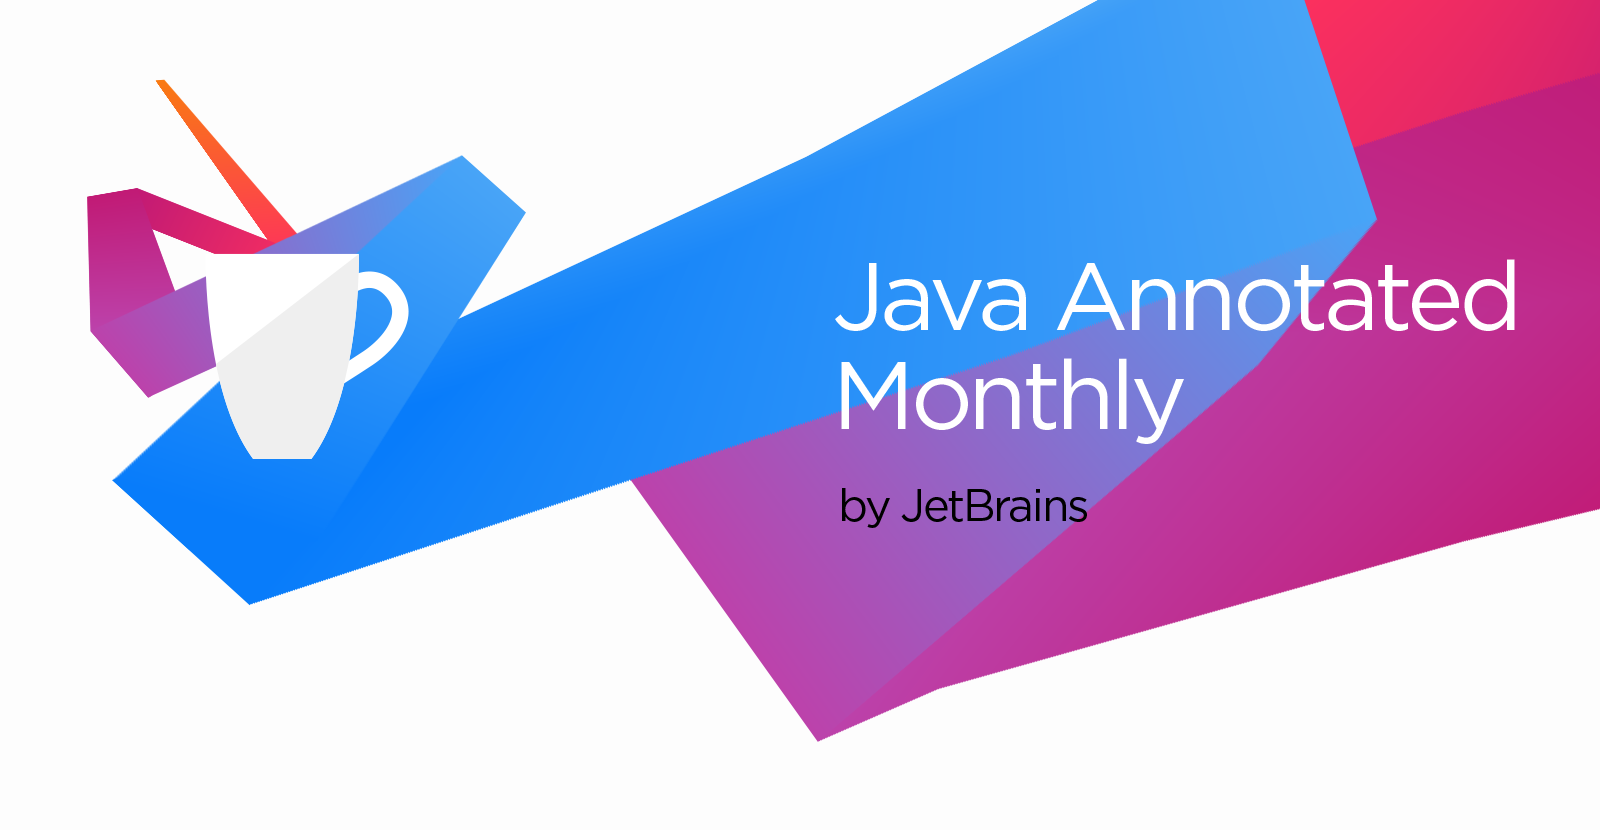 JavaAnnotatedMonthly@2x